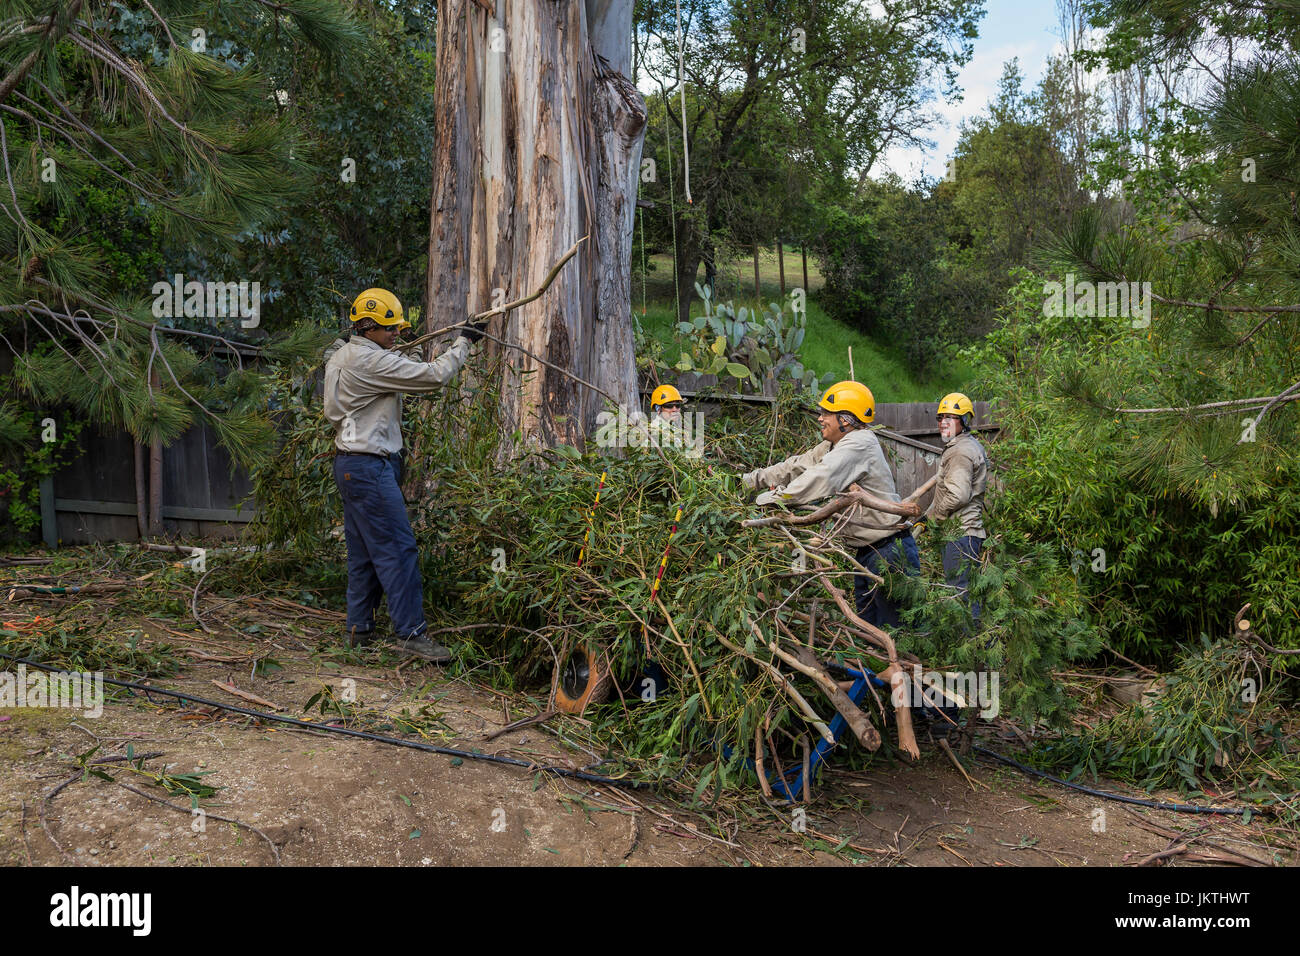 tree trimmers, tree branch trimmers, trimming tree branch, blue-gum eucalyptus tree, tree care, lumberman, city - Stock Image